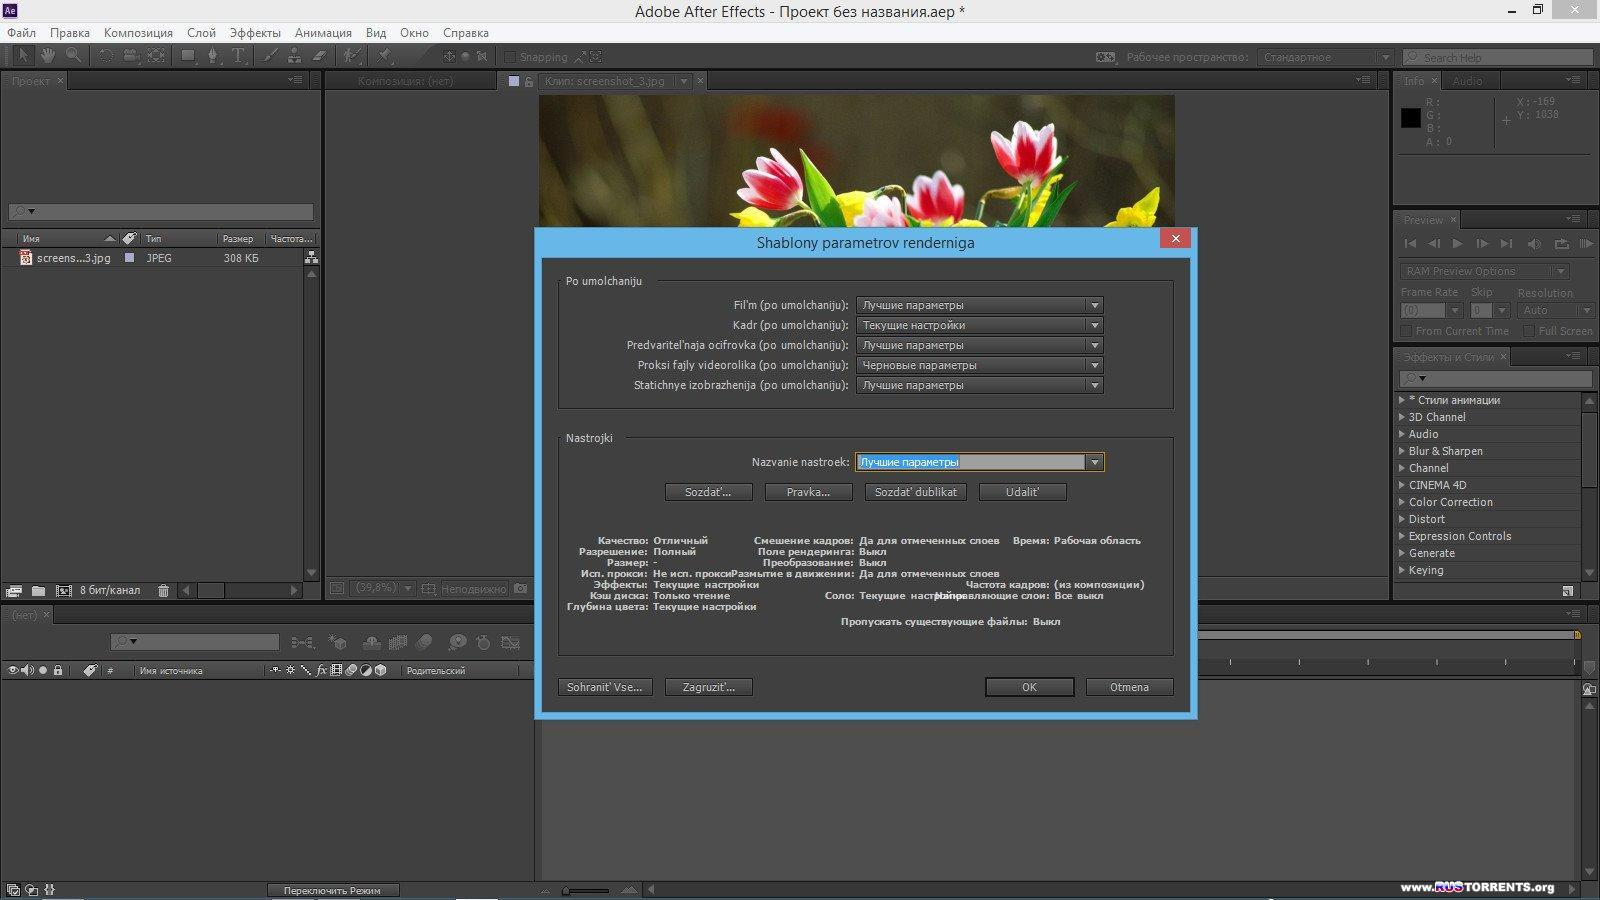 Adobe After Effects CC 12.1.0.168 [x64] | PC | RePack by D!akov